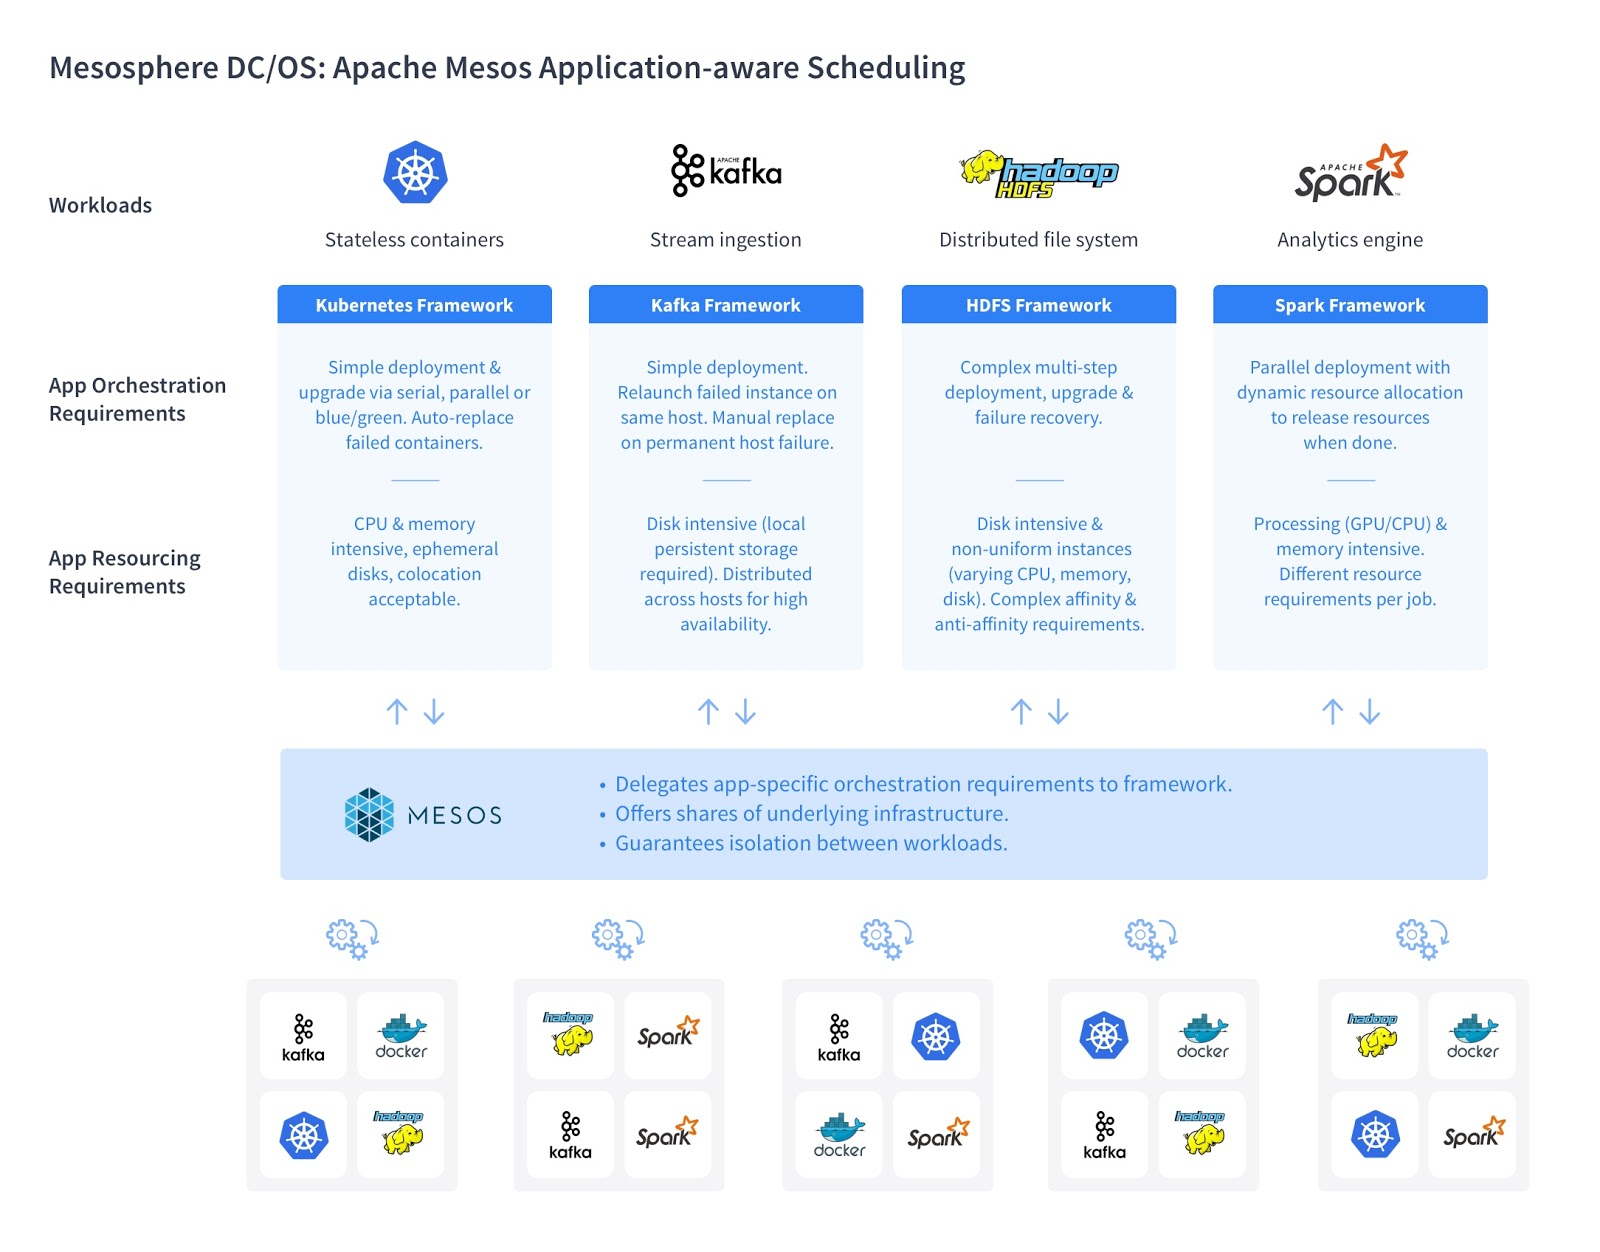 Apache Mesos Application-aware Scheduling